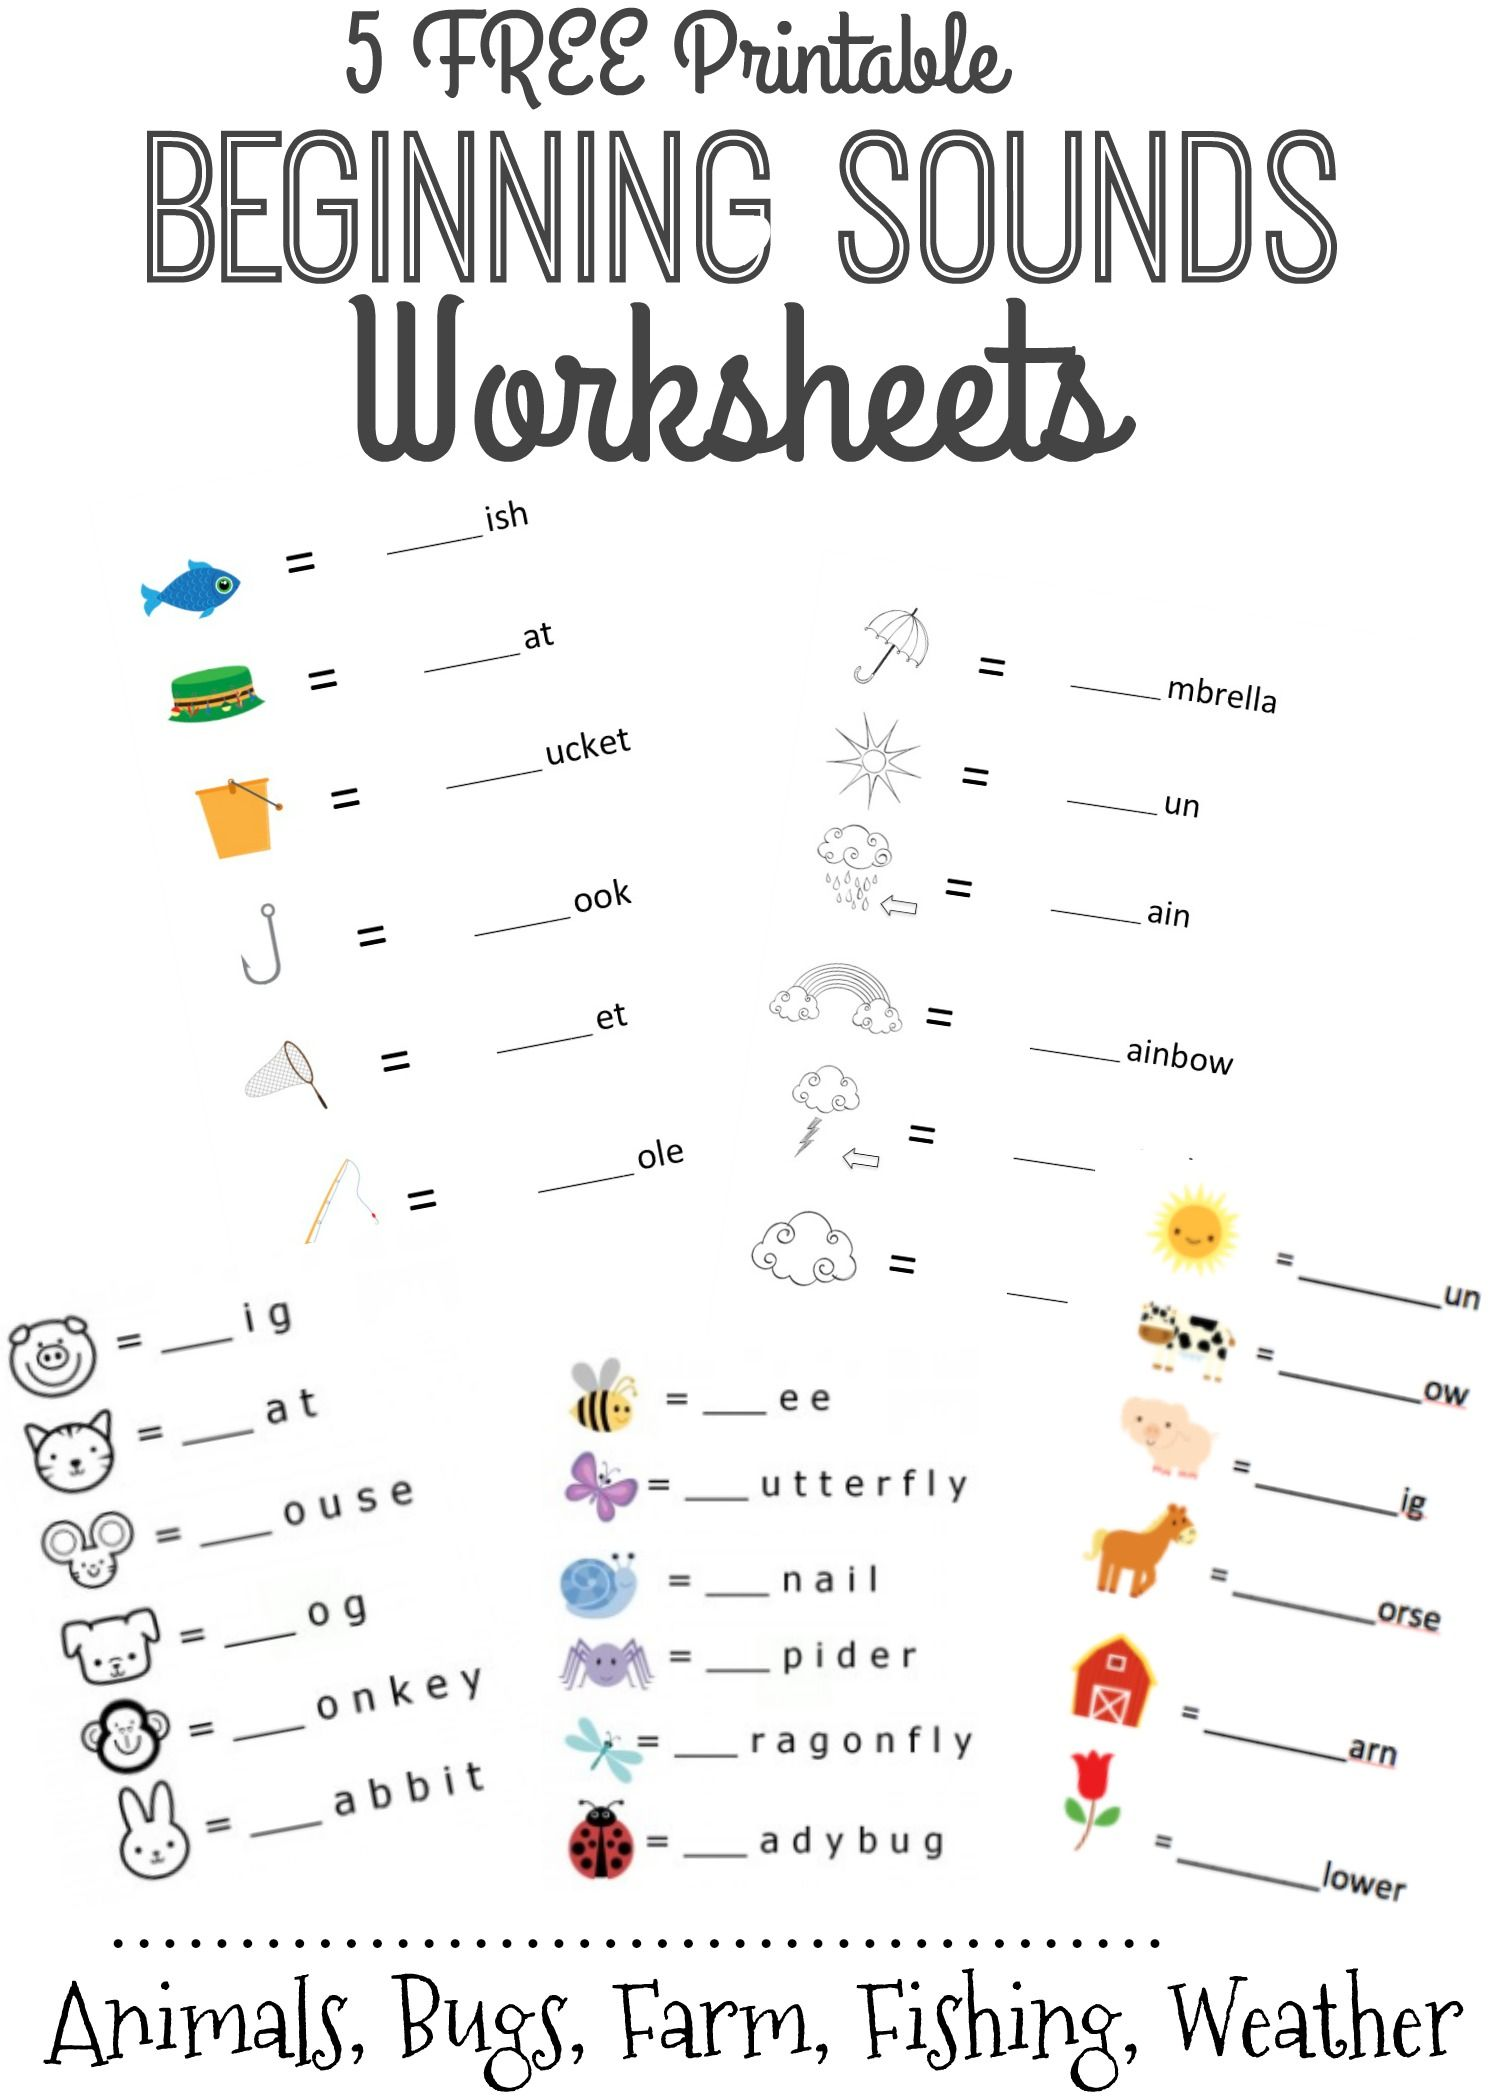 Beginning Sounds Letter Worksheets For Early Learners 1st Grade